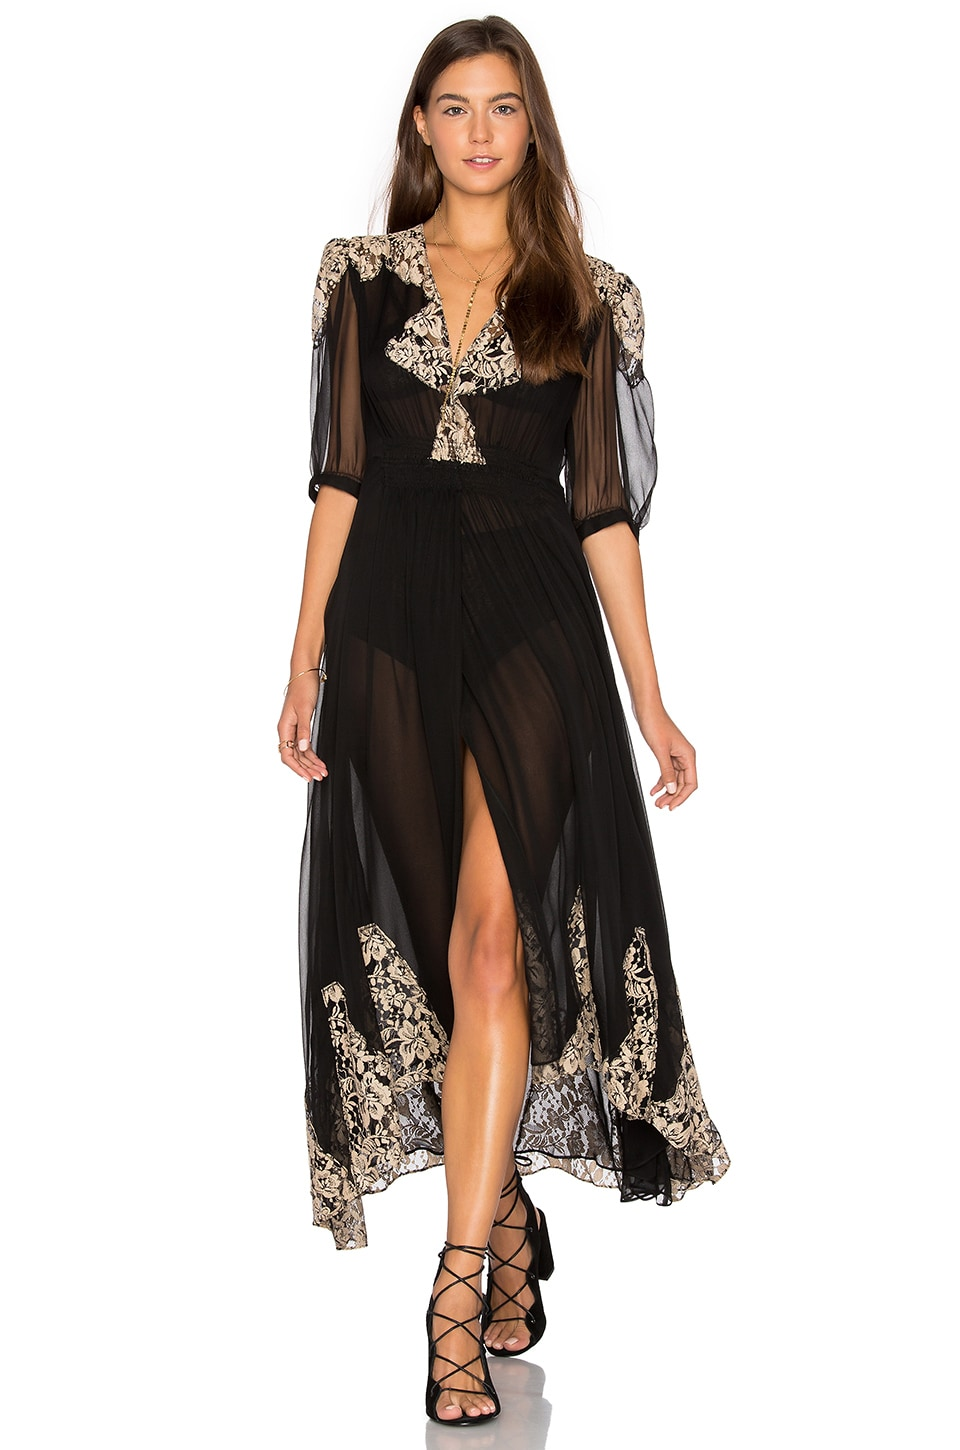 Nightcap by Carisa Rene Antique Lace Wrap Gown in Black